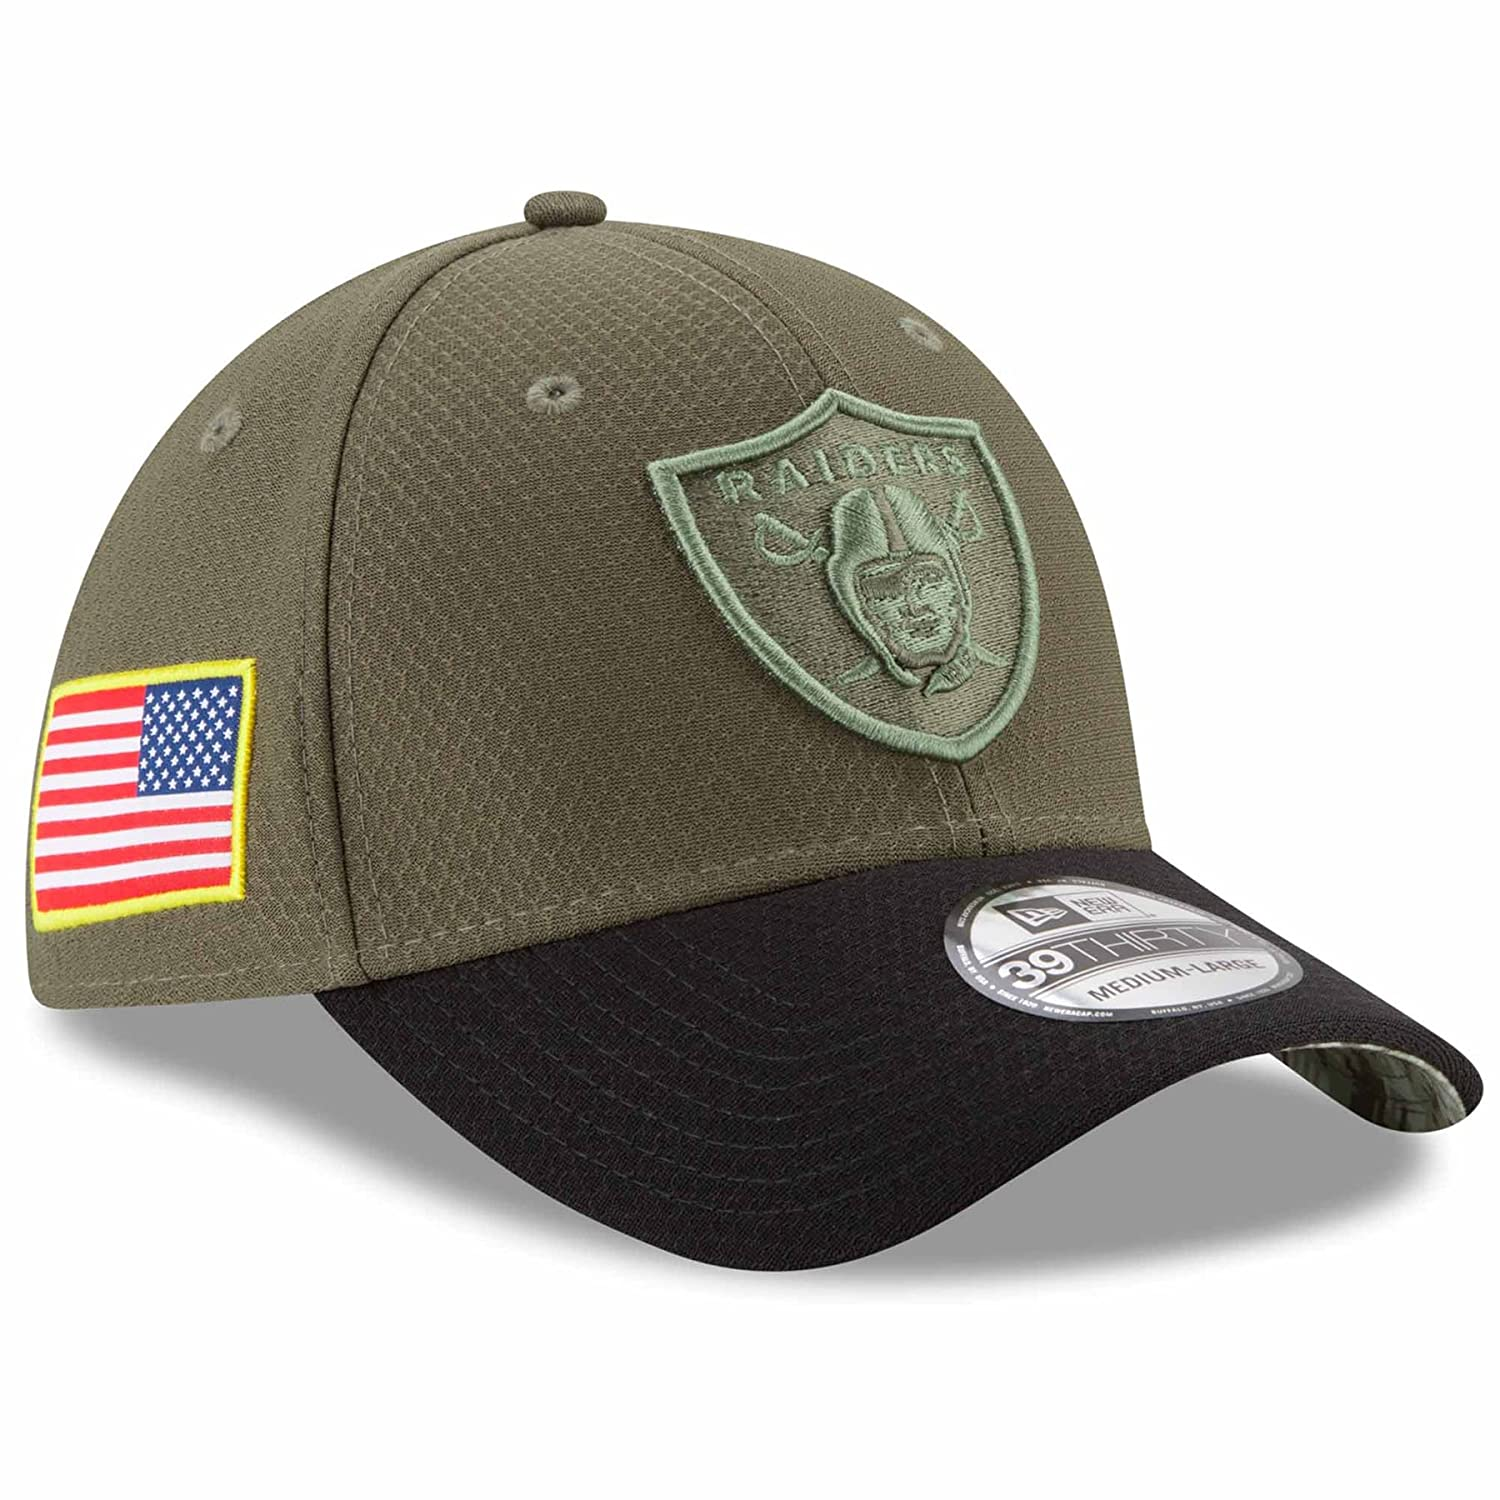 8ec43d7b6 ... where to buy oakland raiders new era nfl 39thirty 2017 sideline salute  to service hat 927f4